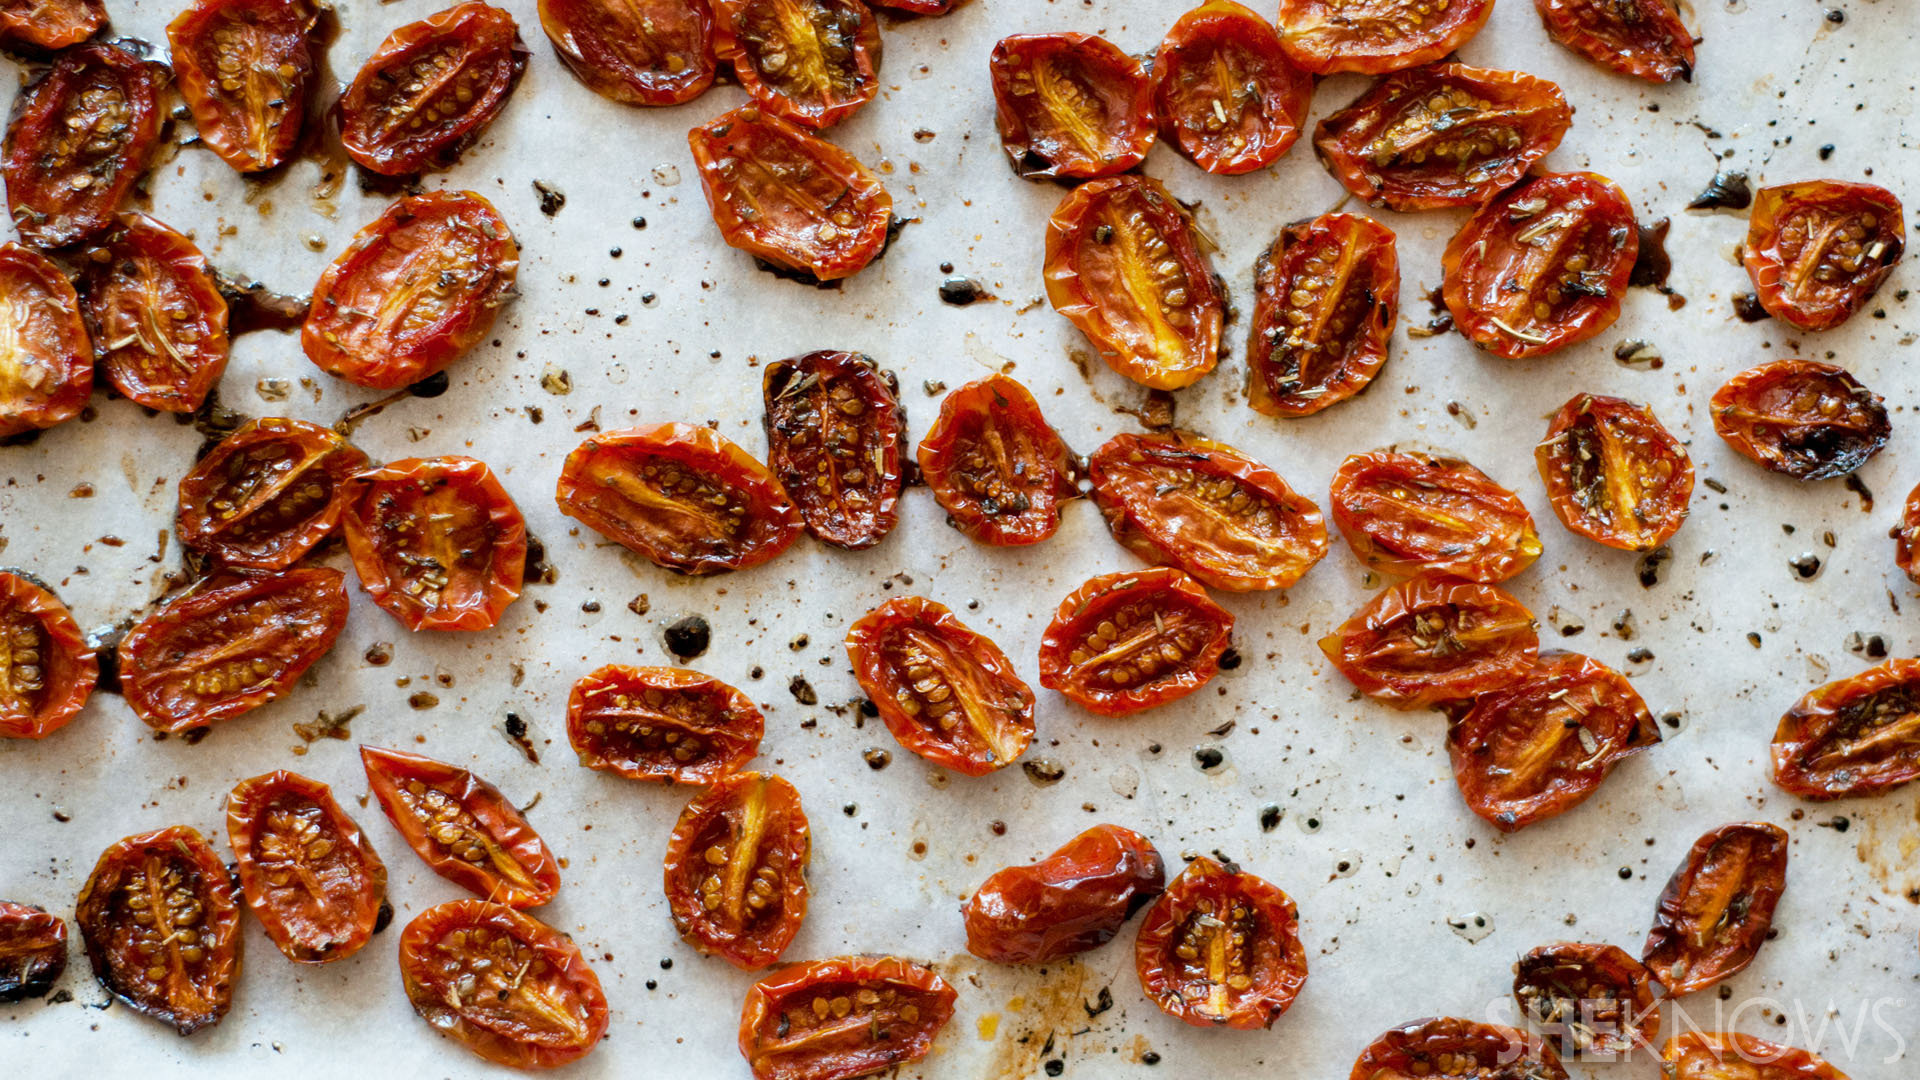 Blistered maple balsamic marinated tomatoes recipe